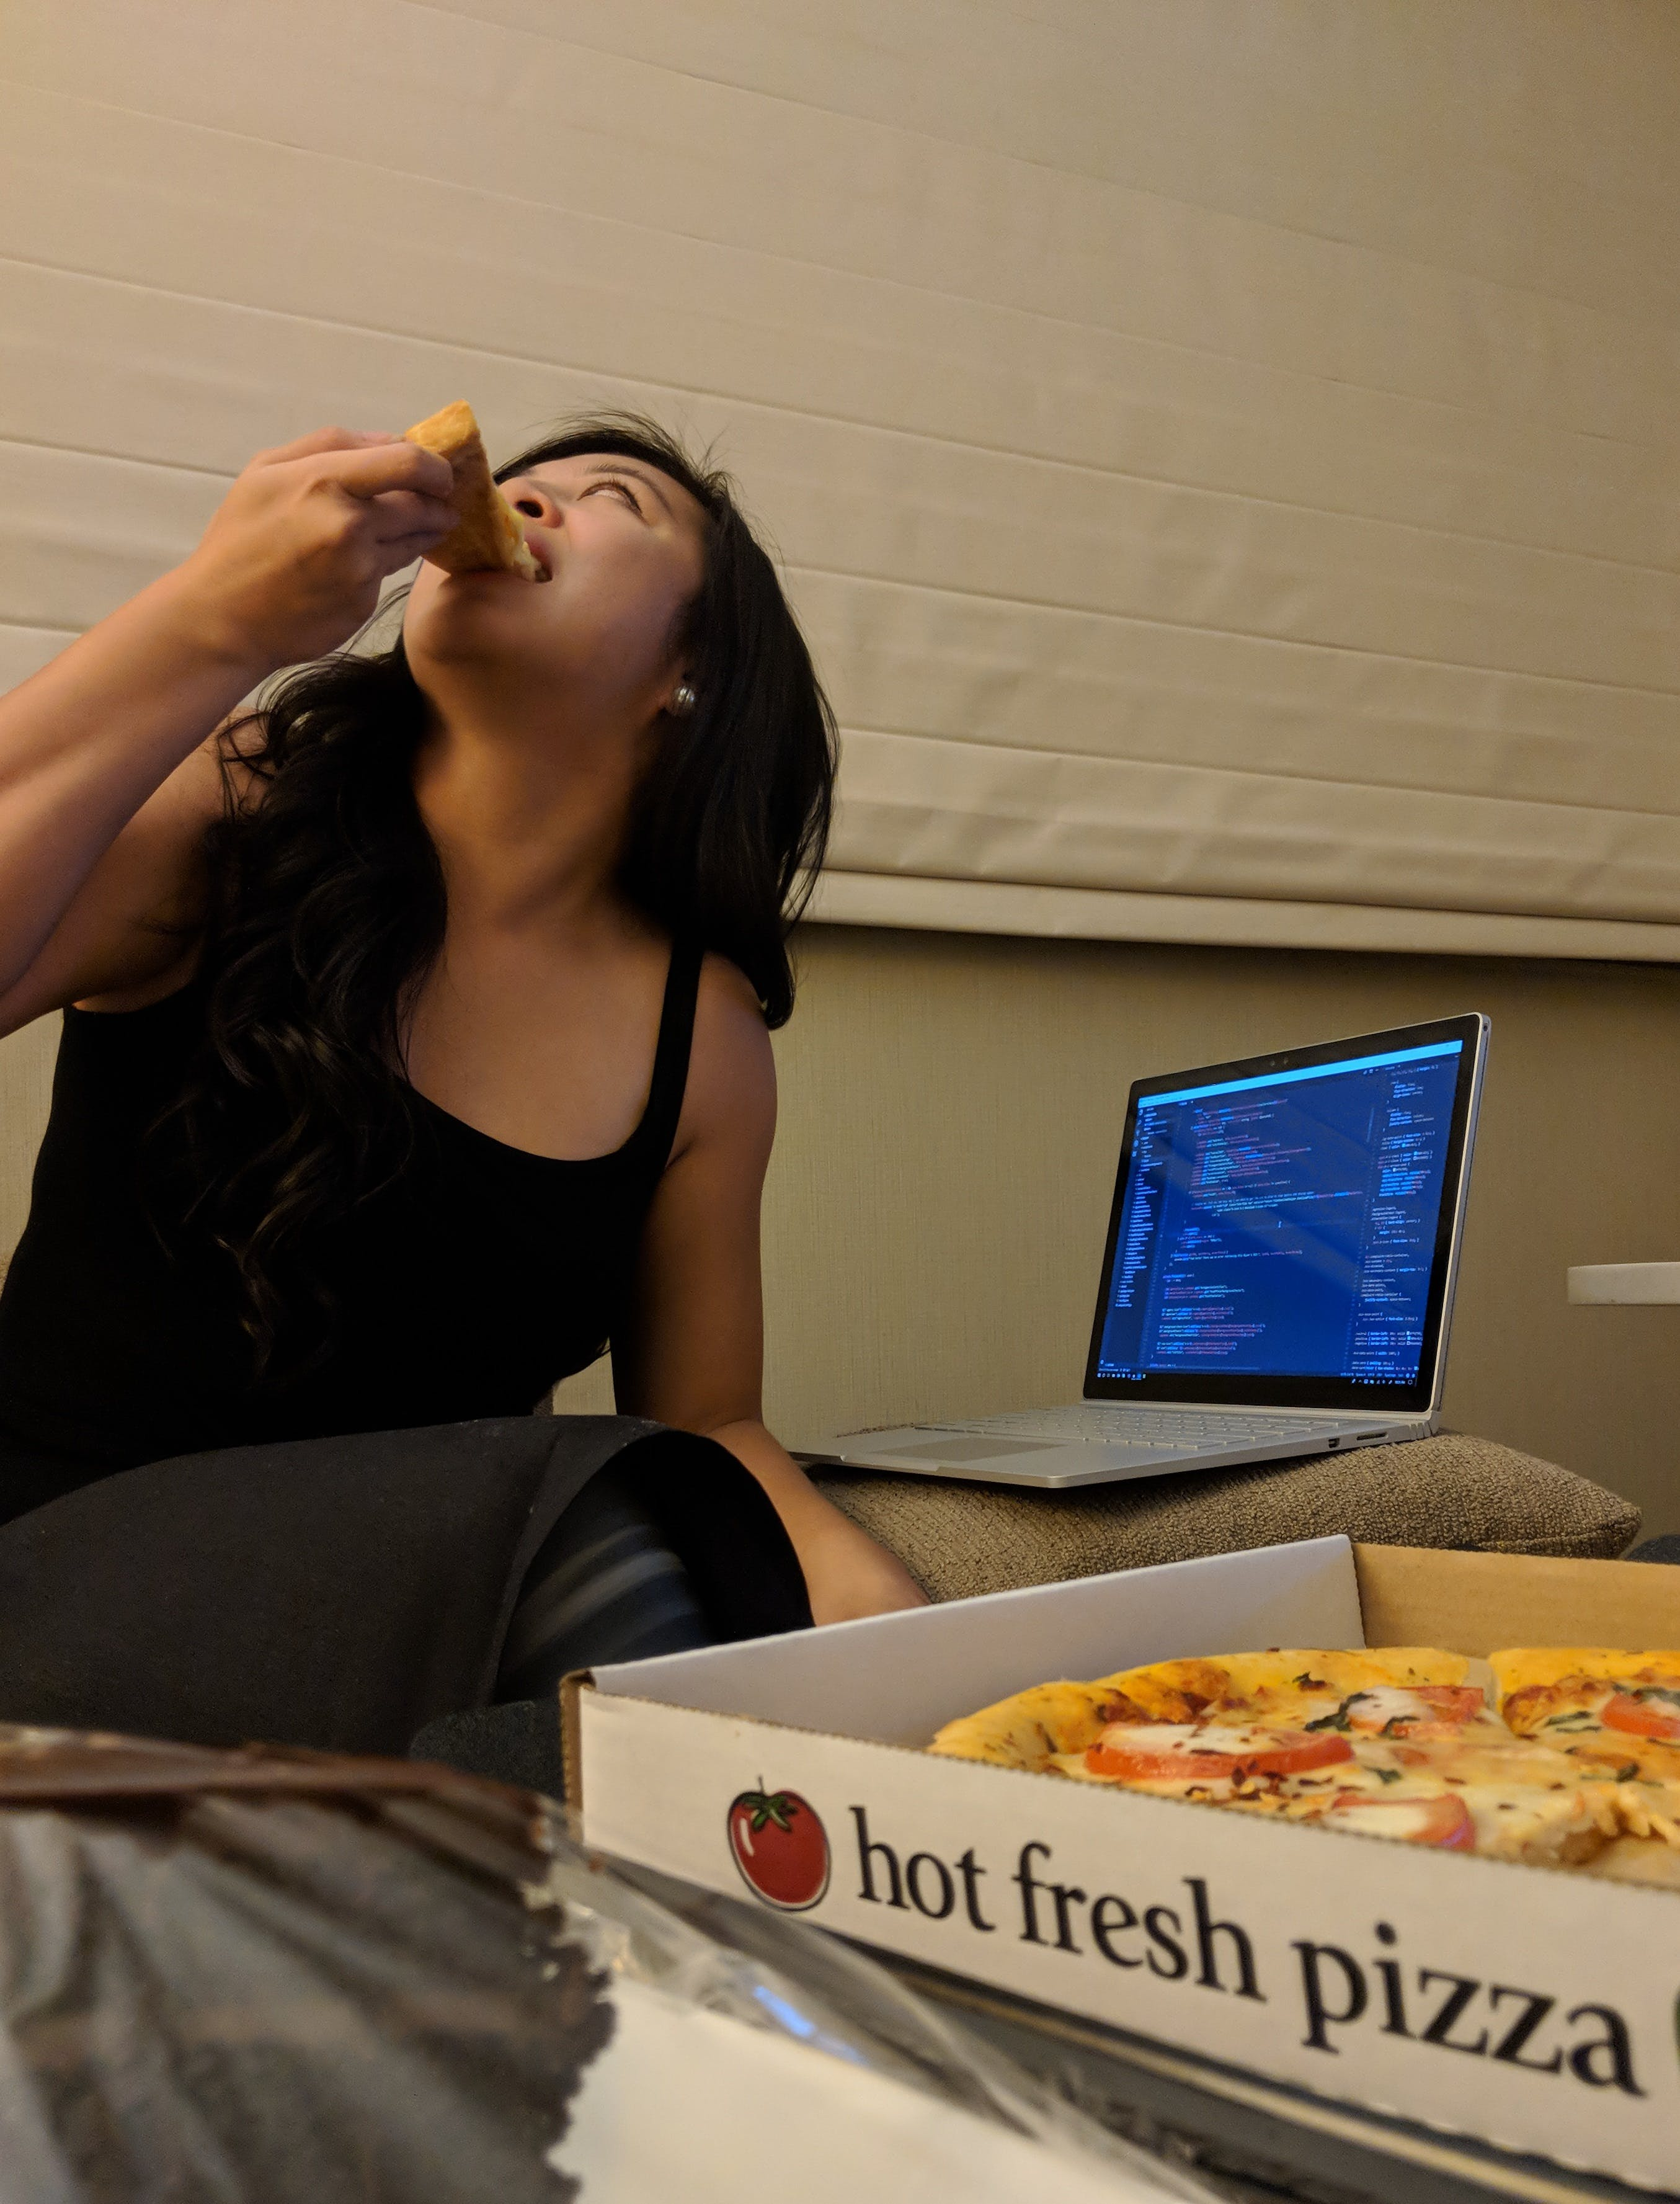 Adrienne eating a pizza in her hotel room.